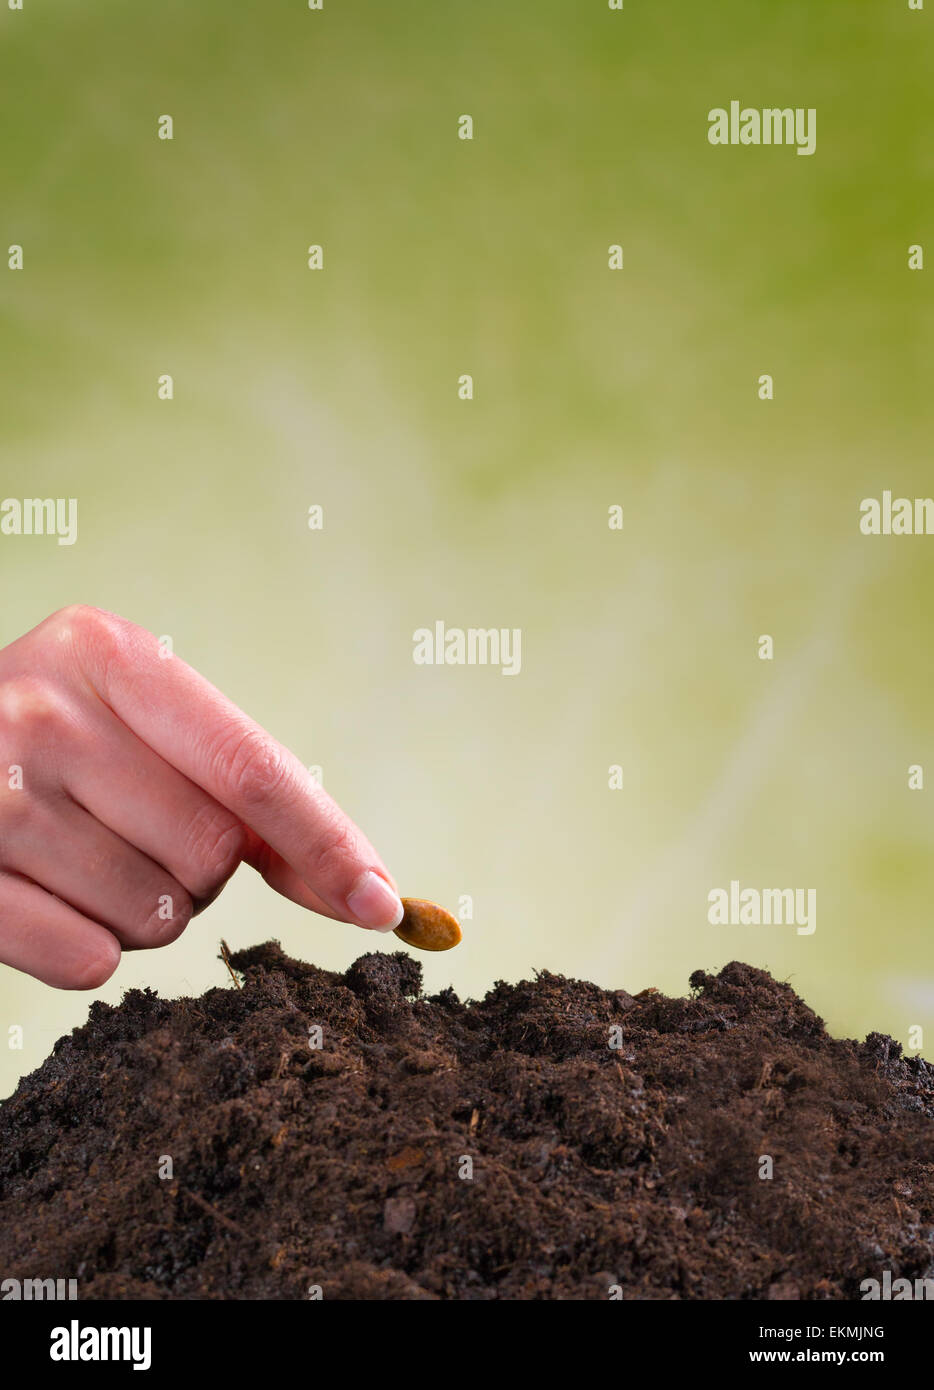 Woman hand seeding seed into pile of soil - Stock Image